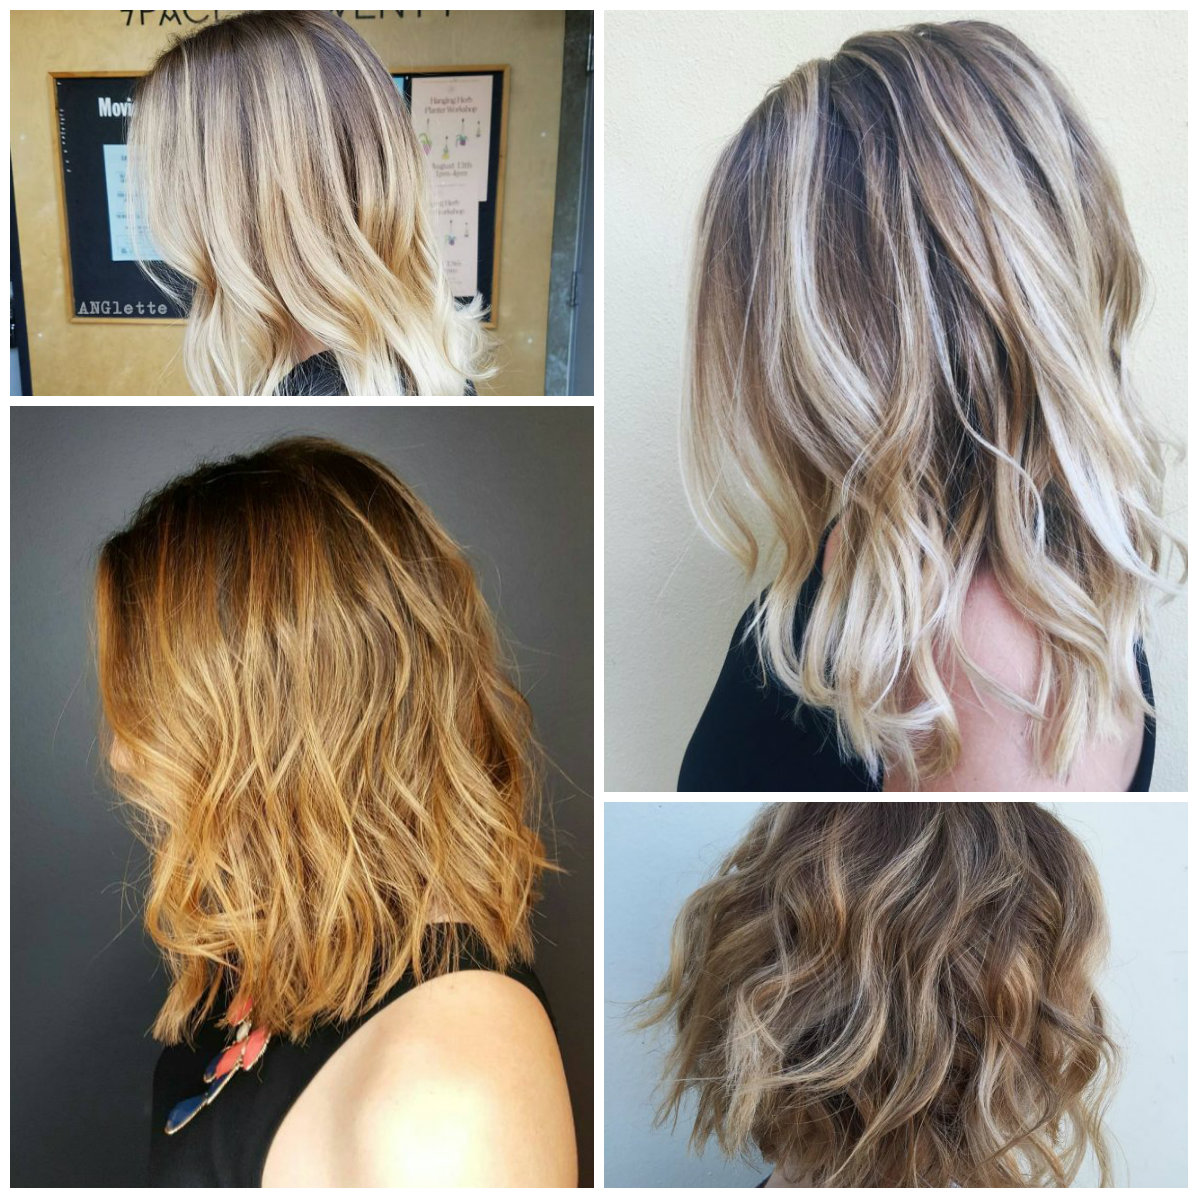 35 amazing Balayage hair color ideas of 2018 – HairStyles